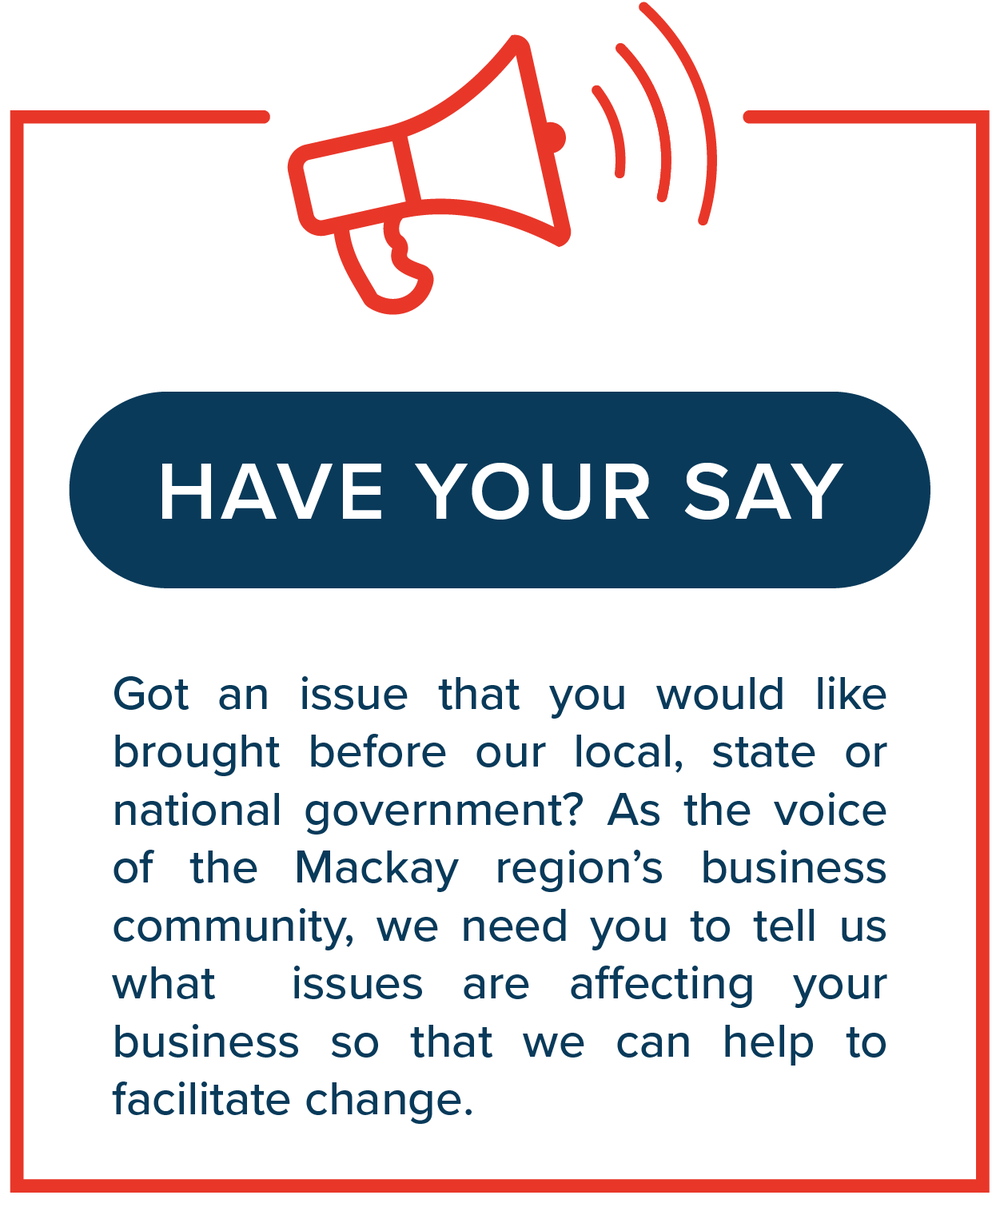 Have Your Say   Got an issue that you would like brought before our local, state or national government? As the voice of the Mackay region's business community, we need you to tell us whatissues are affecting your business so that we can help to facilitate change.